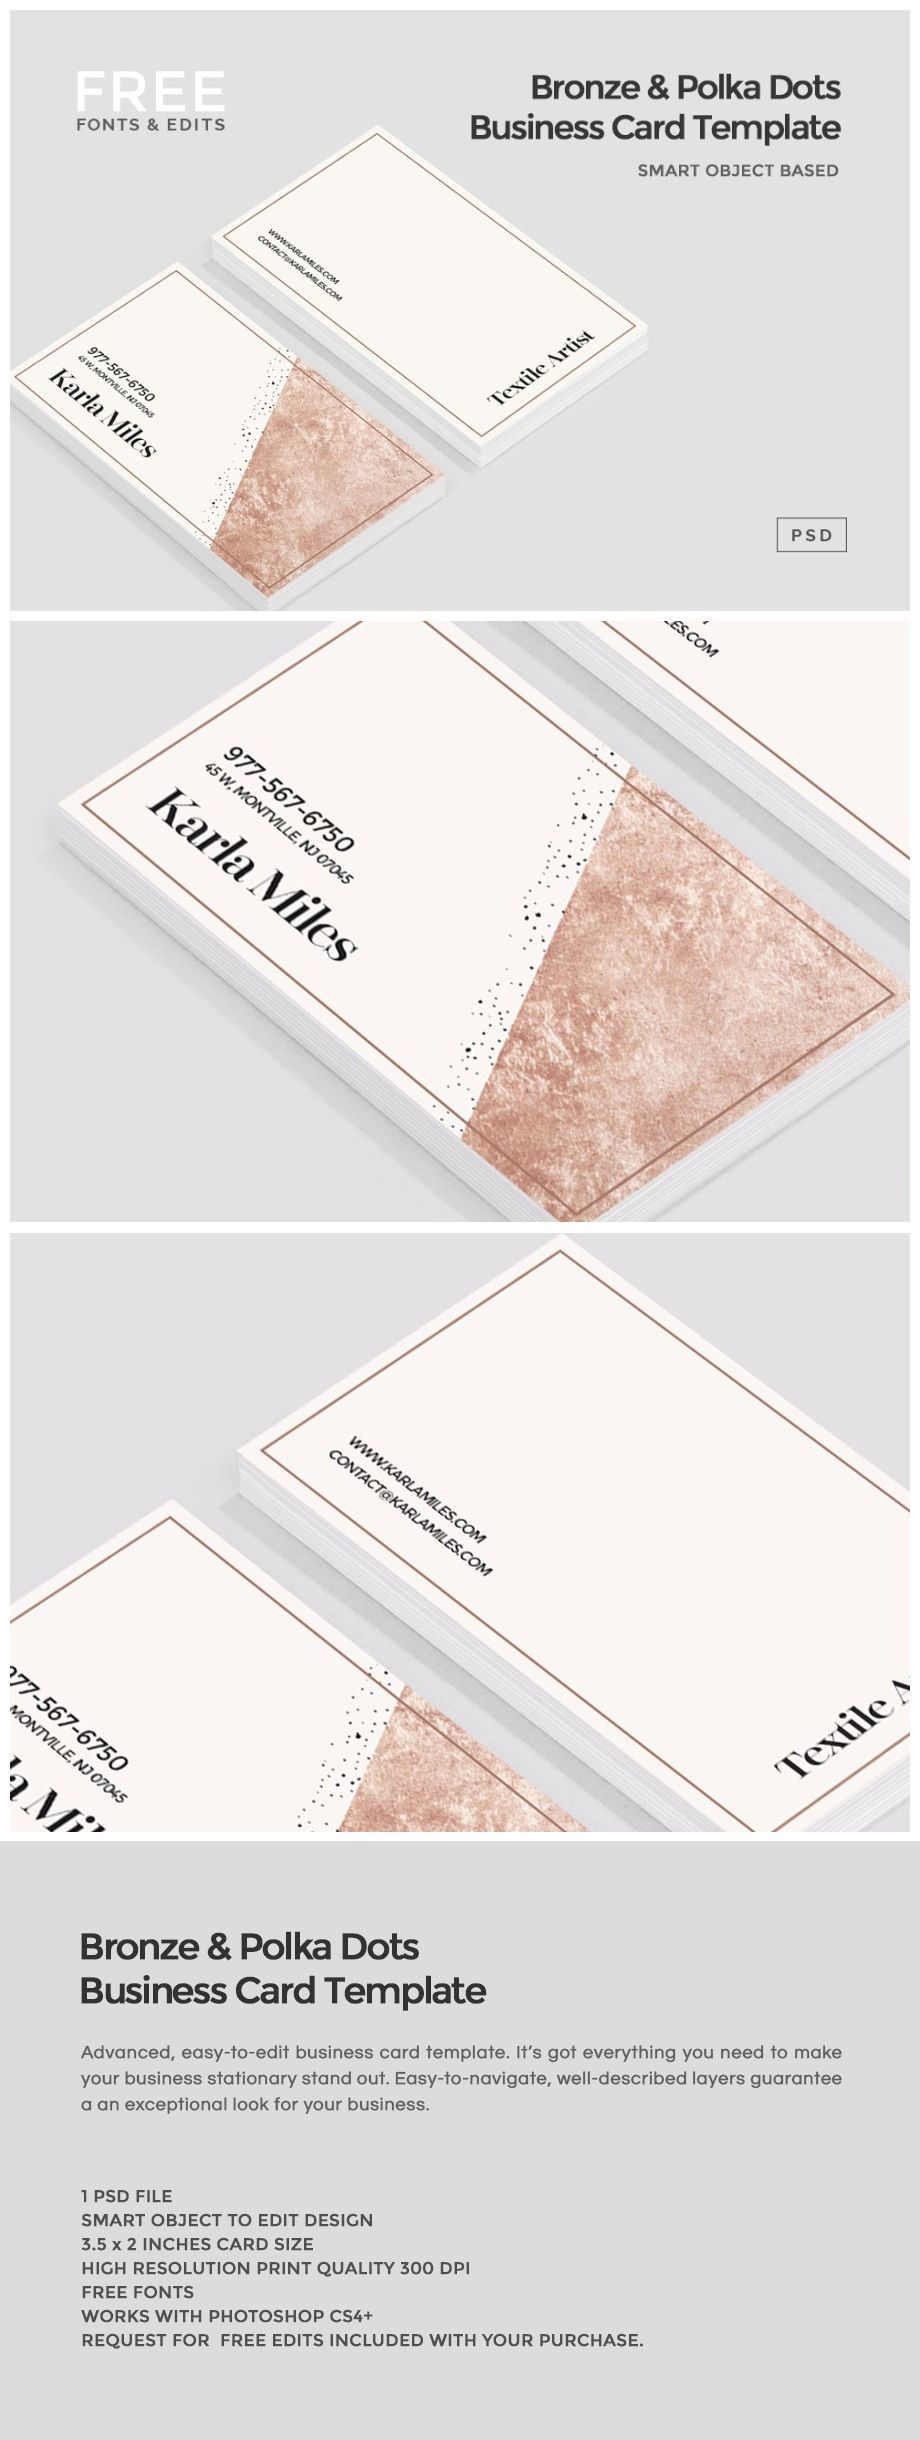 Bronze polka dots business card size 35 x 2 inches d with 300 83 oranges business card colourmoves Image collections